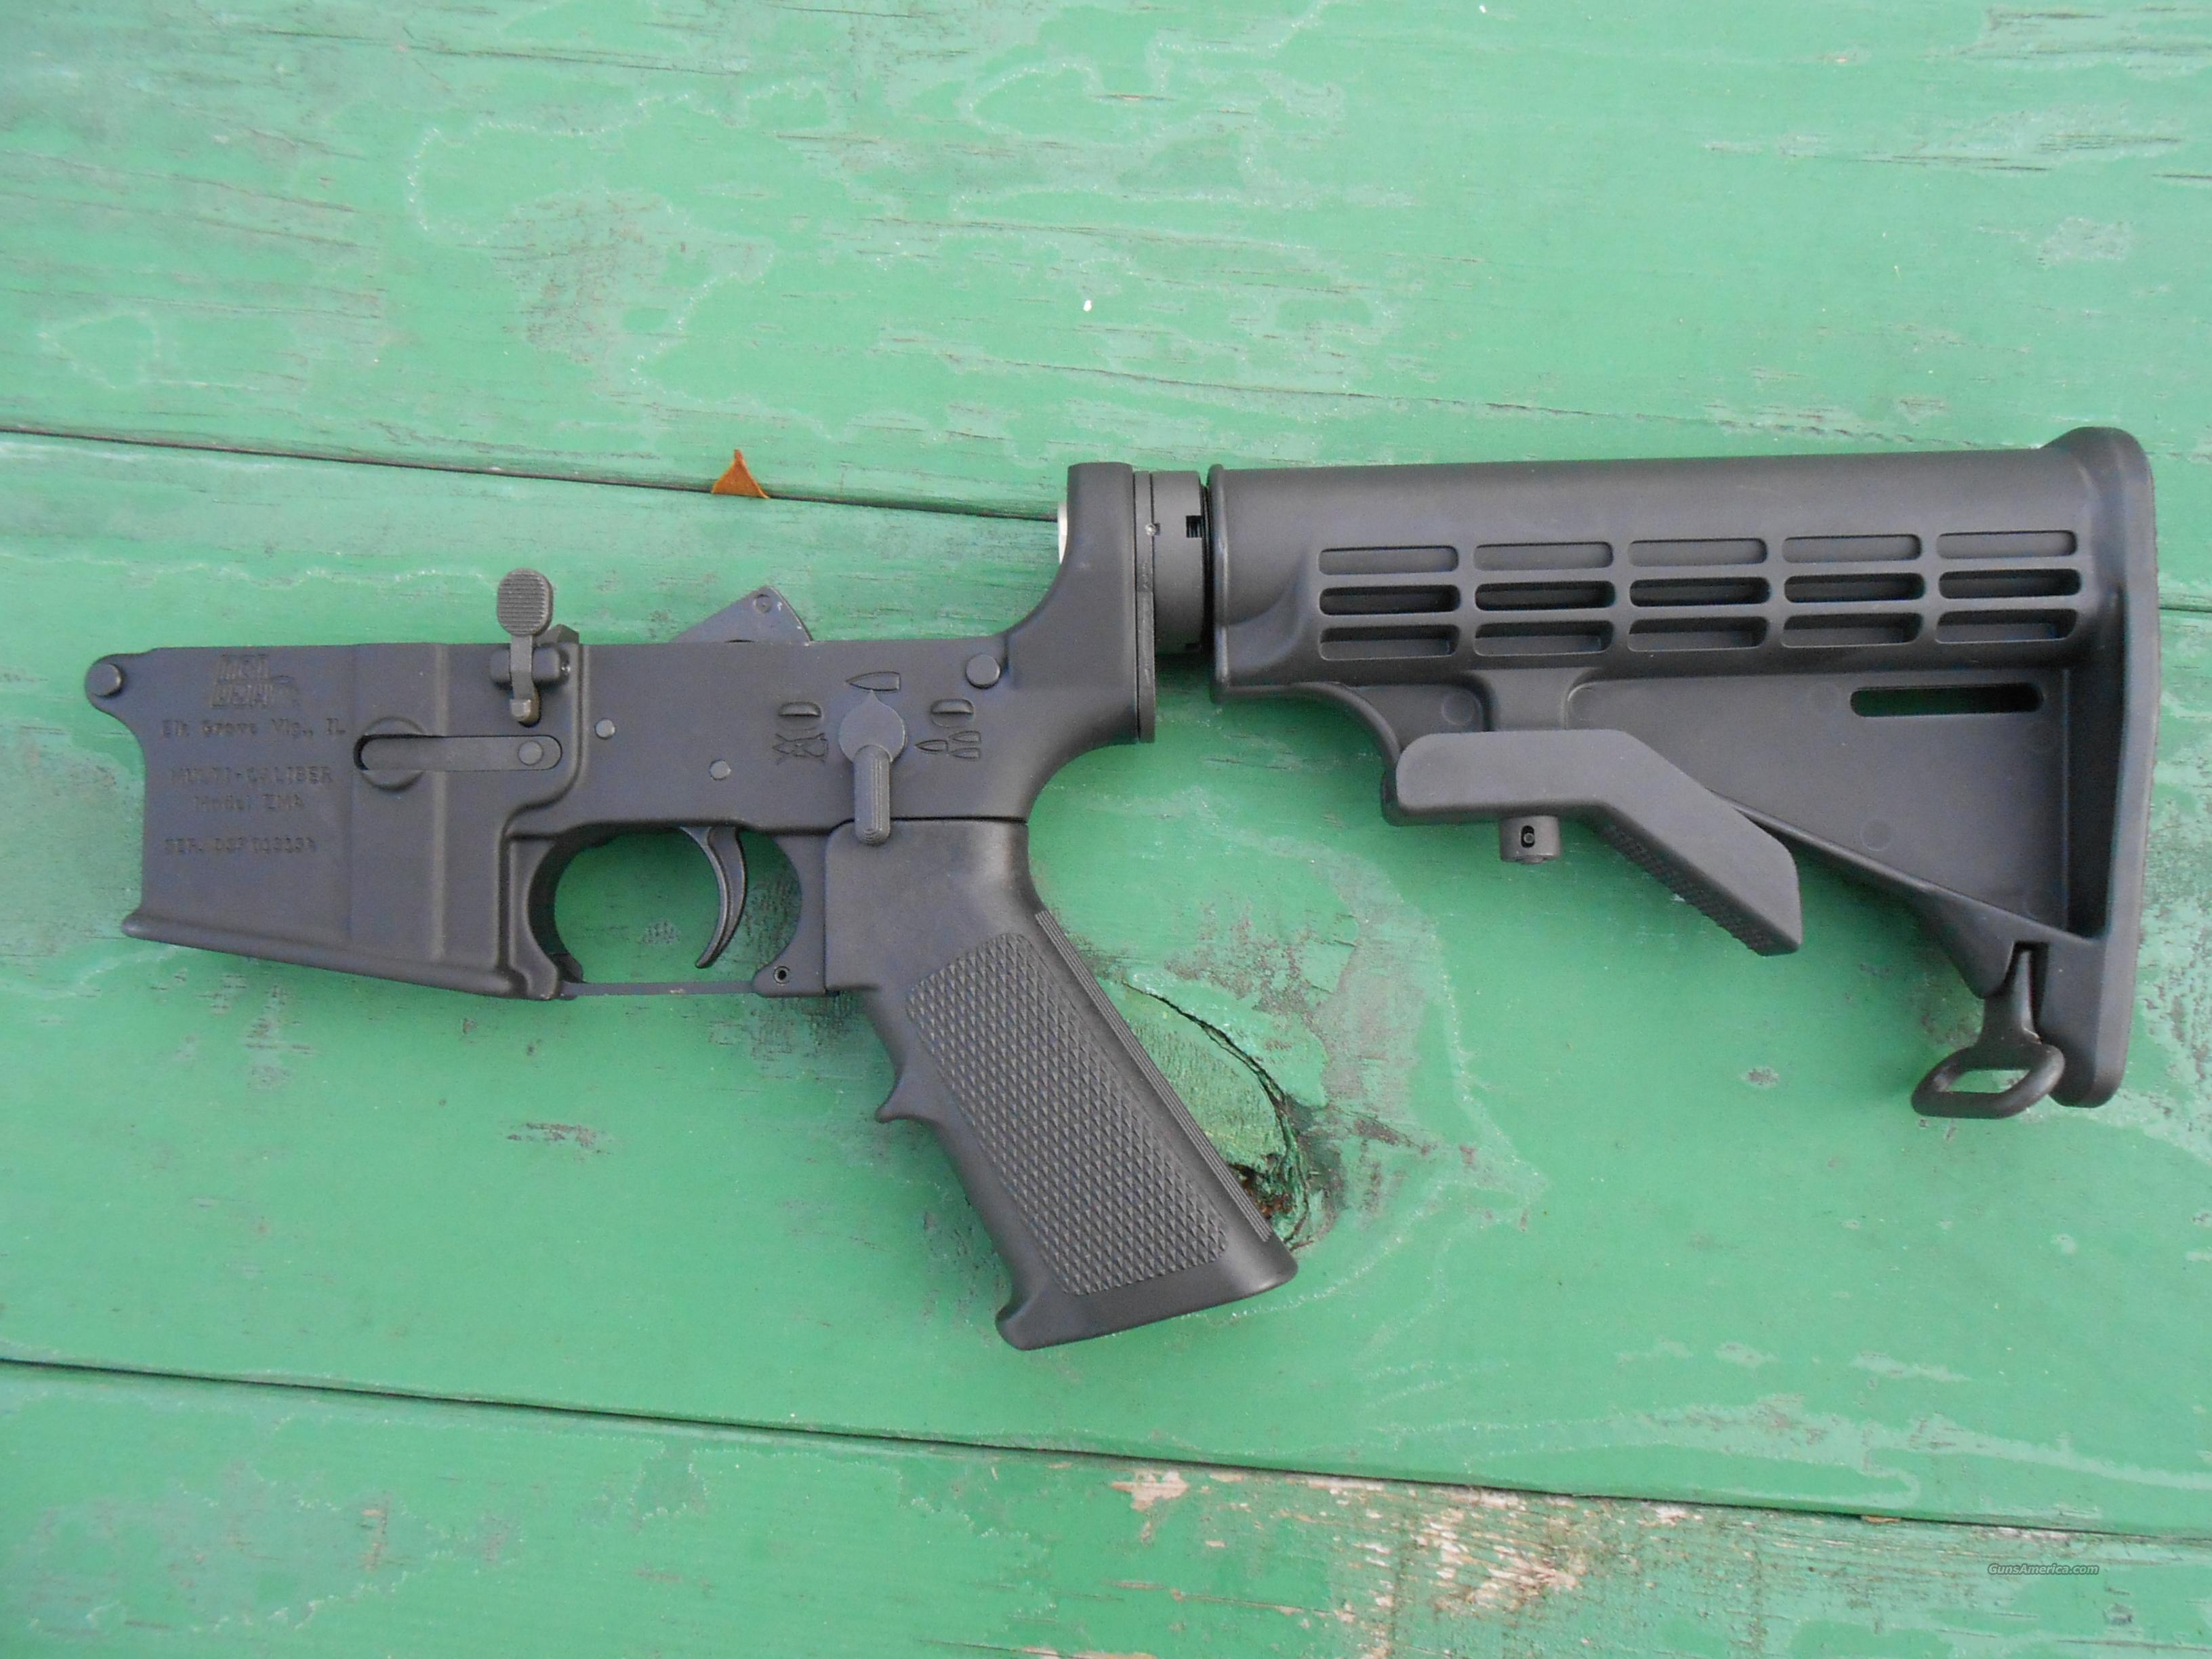 DSA COMPLETE LOWER  Guns > Rifles > AR-15 Rifles - Small Manufacturers > Lower Only